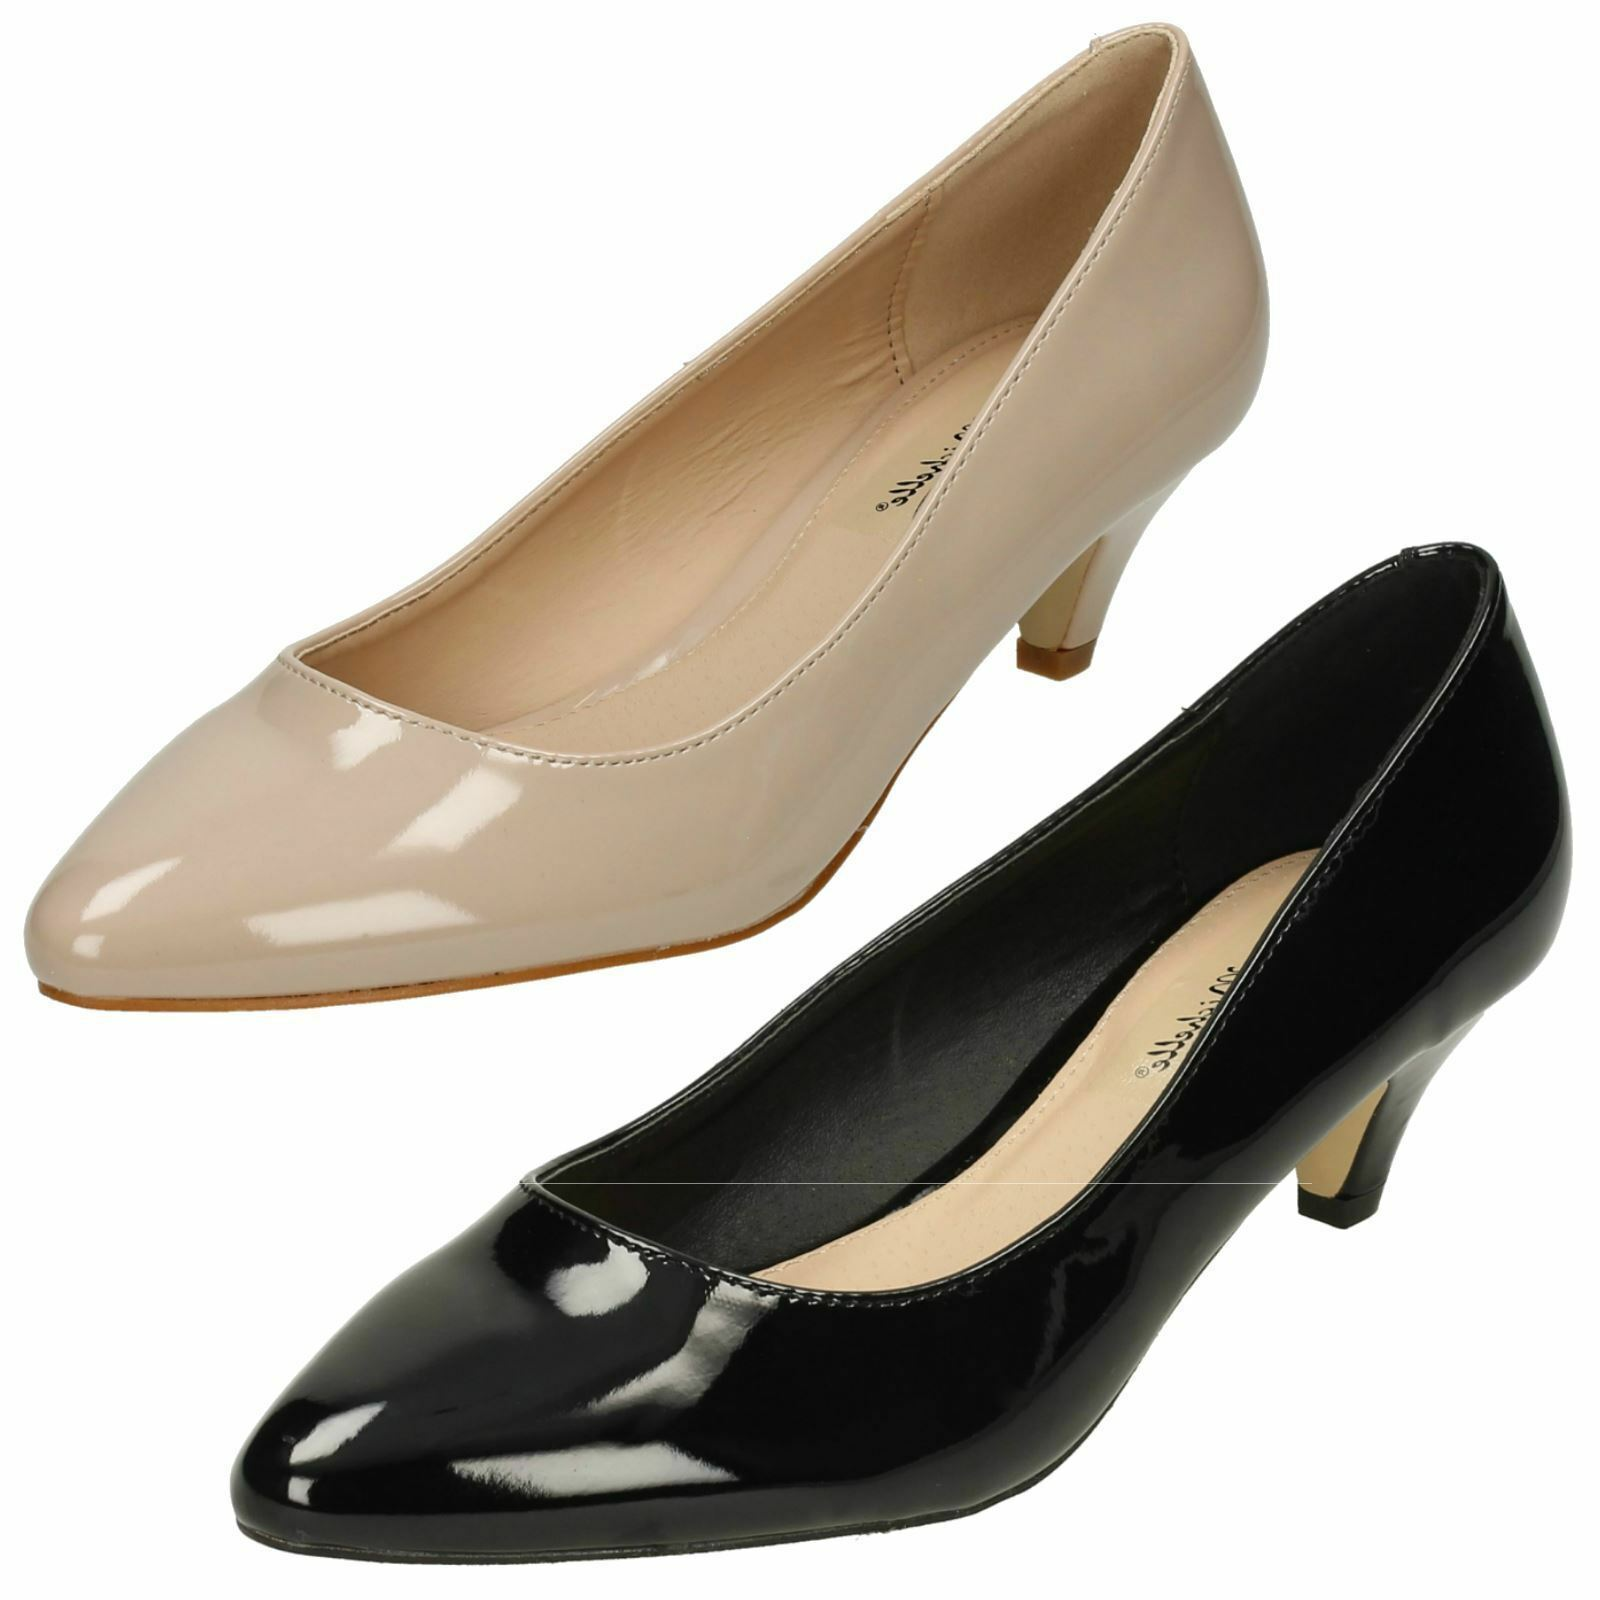 Ladies Anne Michelle Black Patent Court Shoes - 5657/F9964